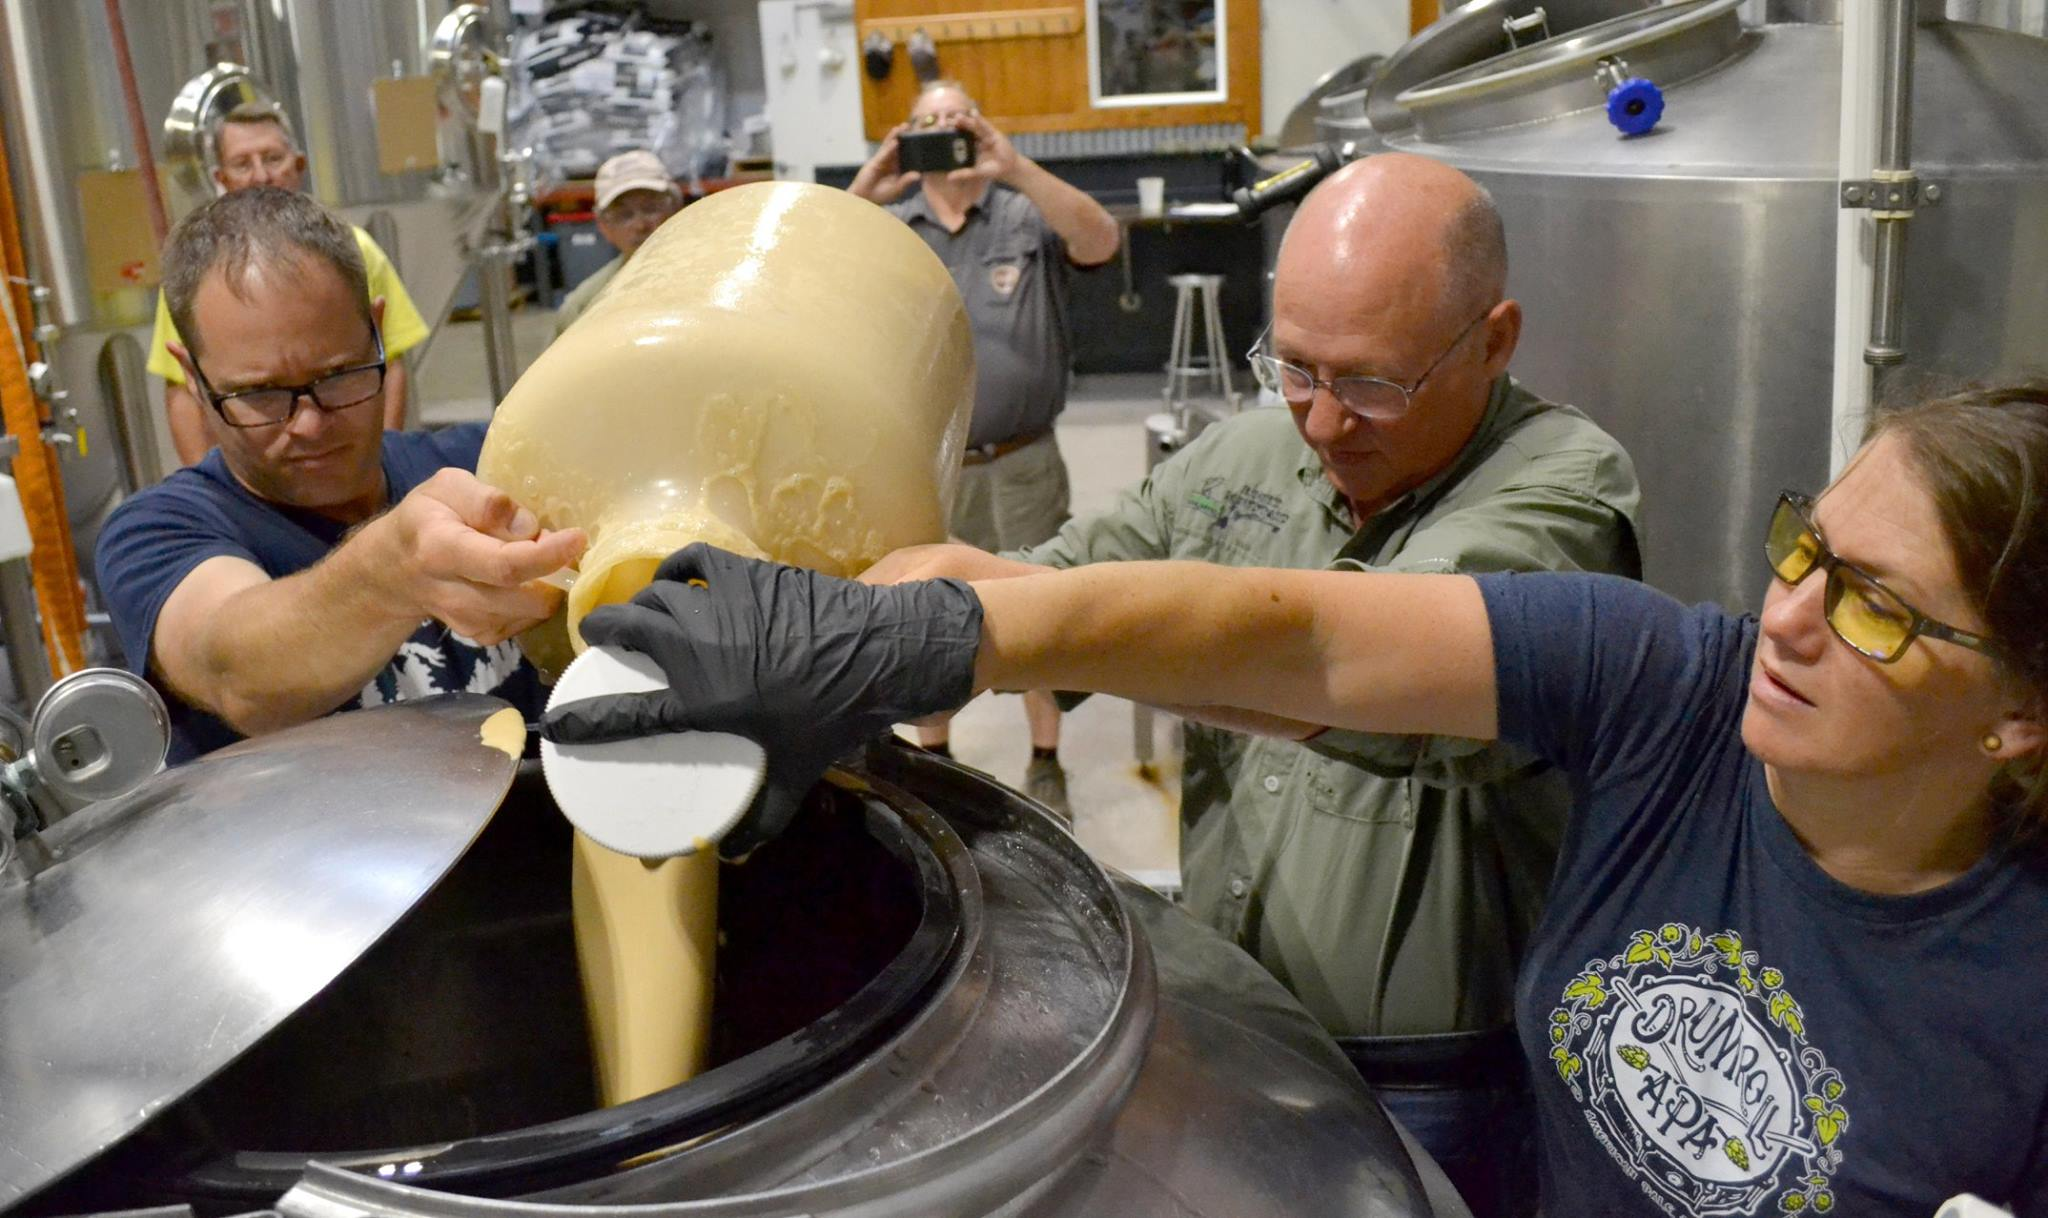 Pouring  Yeast: U.S. Forest Service Fisheries Biologist Matt Fairchild, Rocky  Mountain Flycasters President Mickey McGuire and Odell's Head Pilot  Brewer Marni Wahlquist add yeast to the brew.